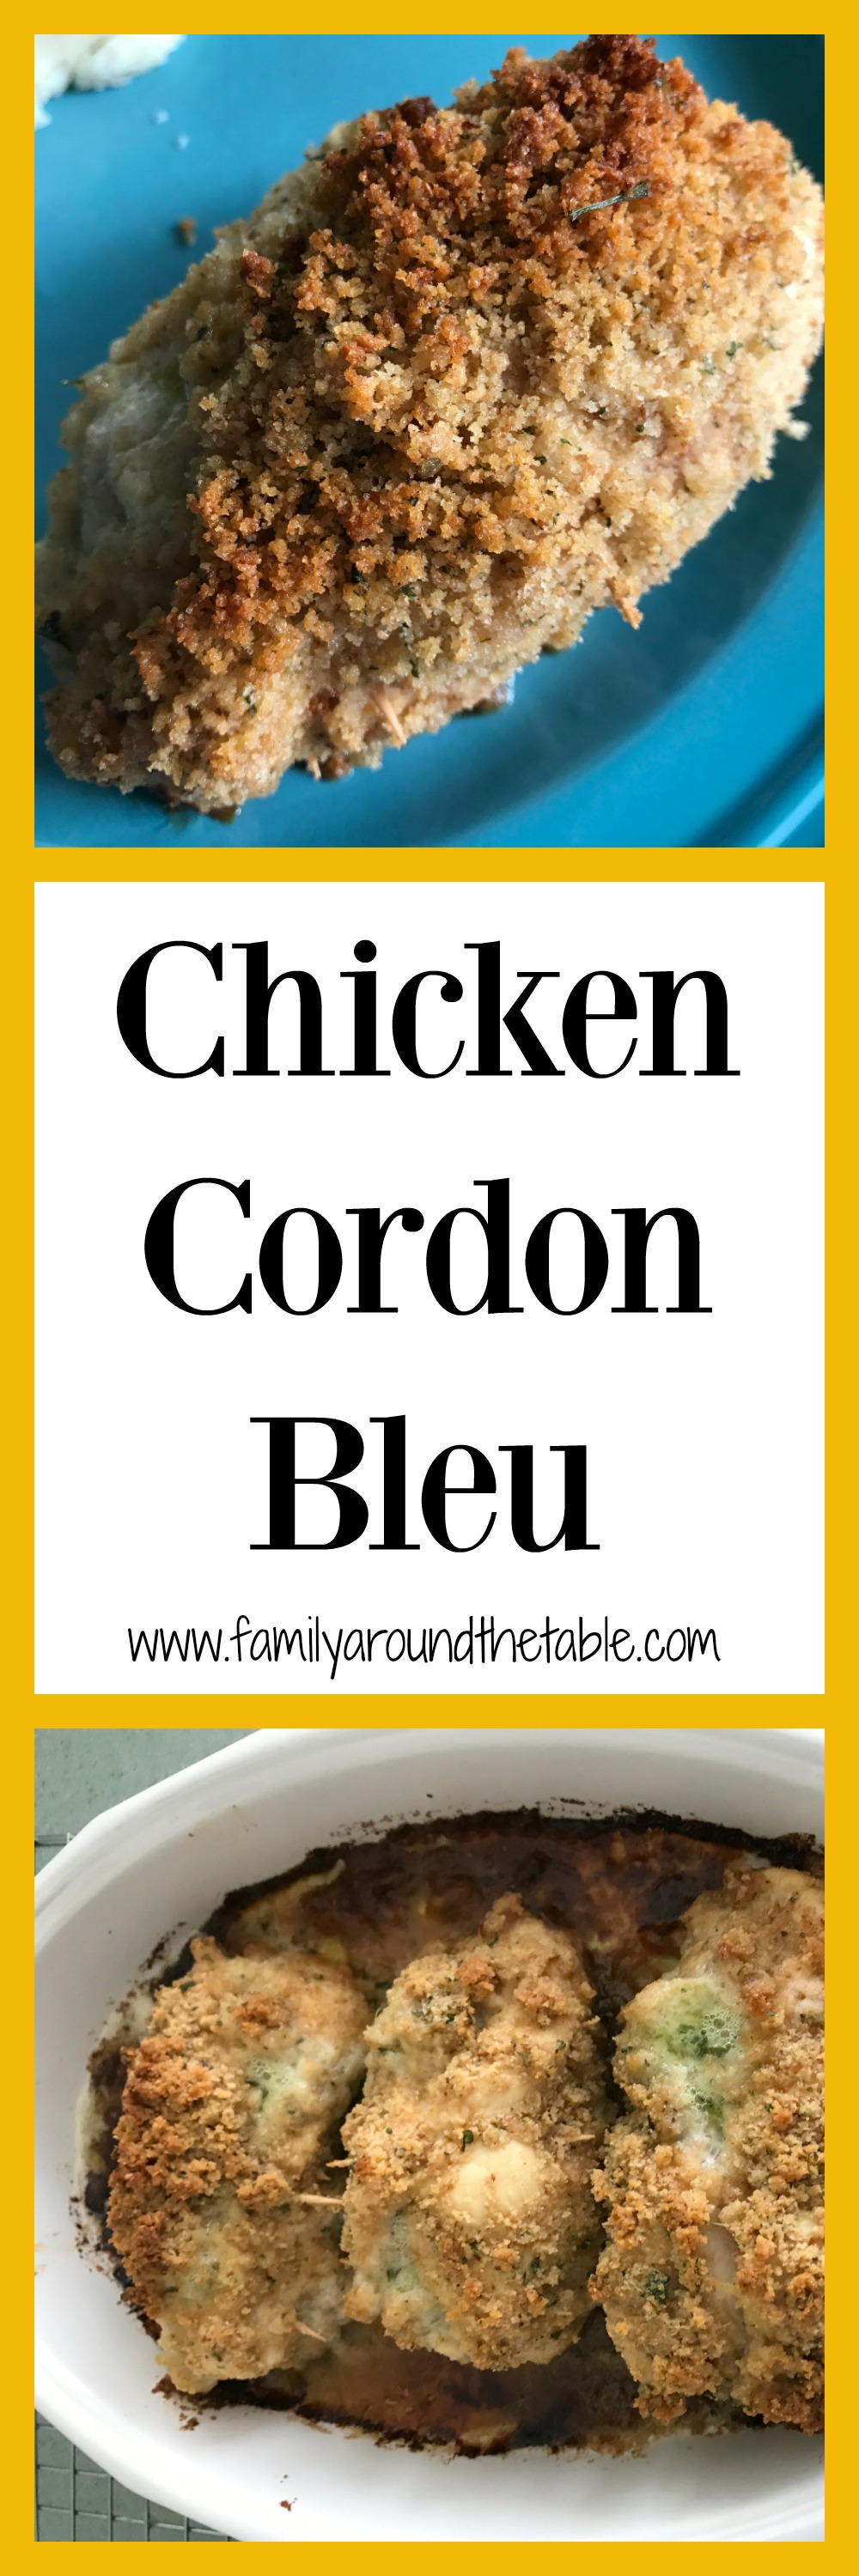 Chicken Cordon Bleu is an impressive dish for company.